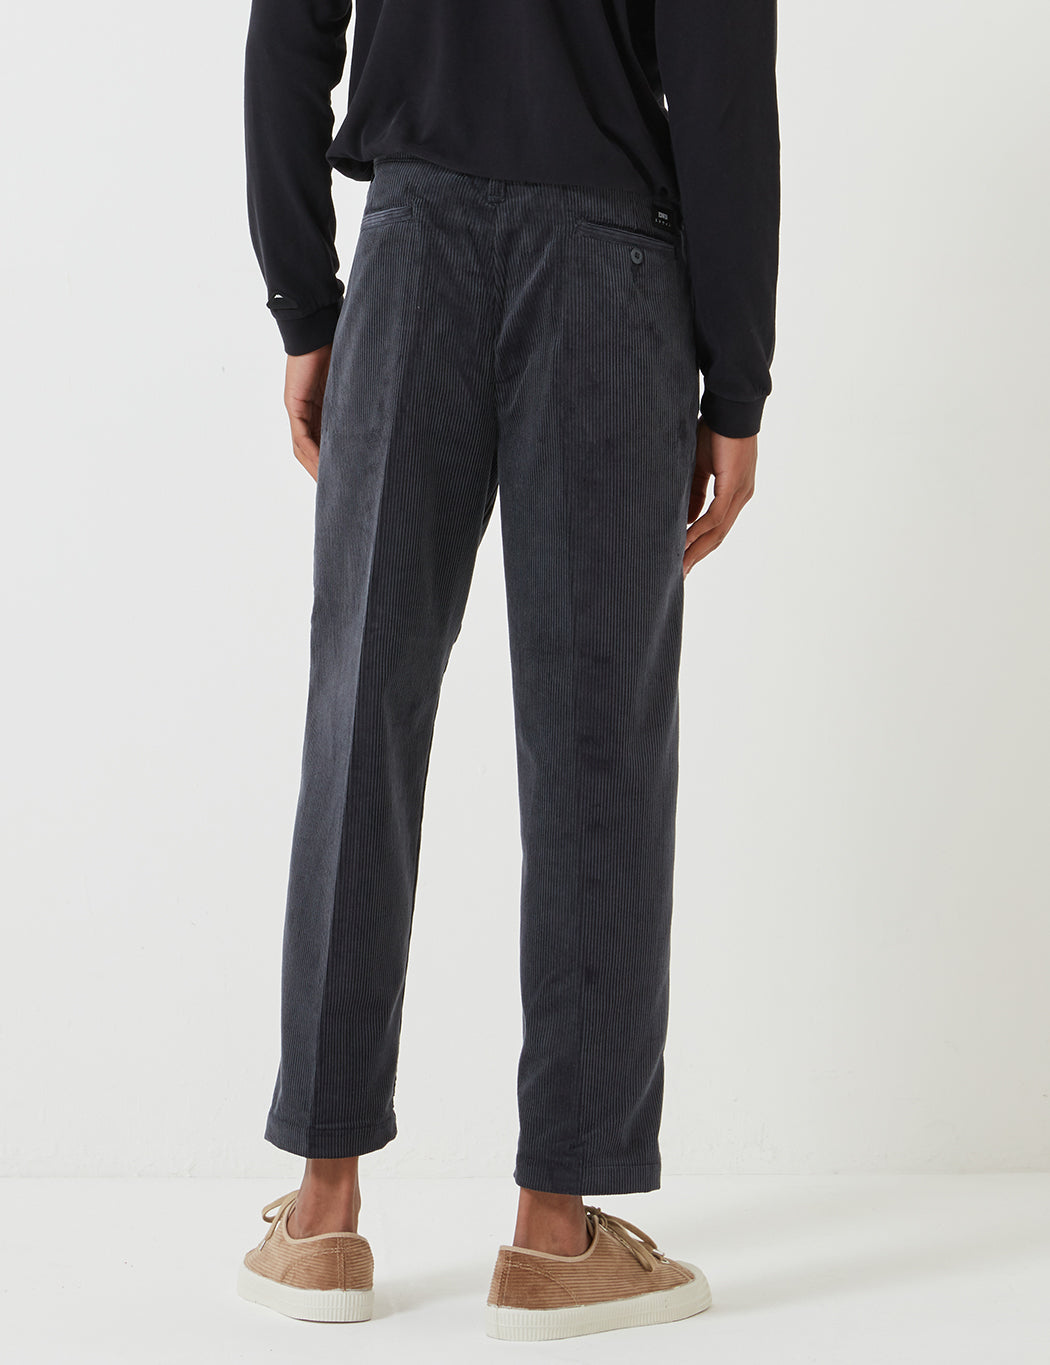 cheapest price multiple colors reasonably priced Edwin Zoot Chino (Corduroy) - Ebony